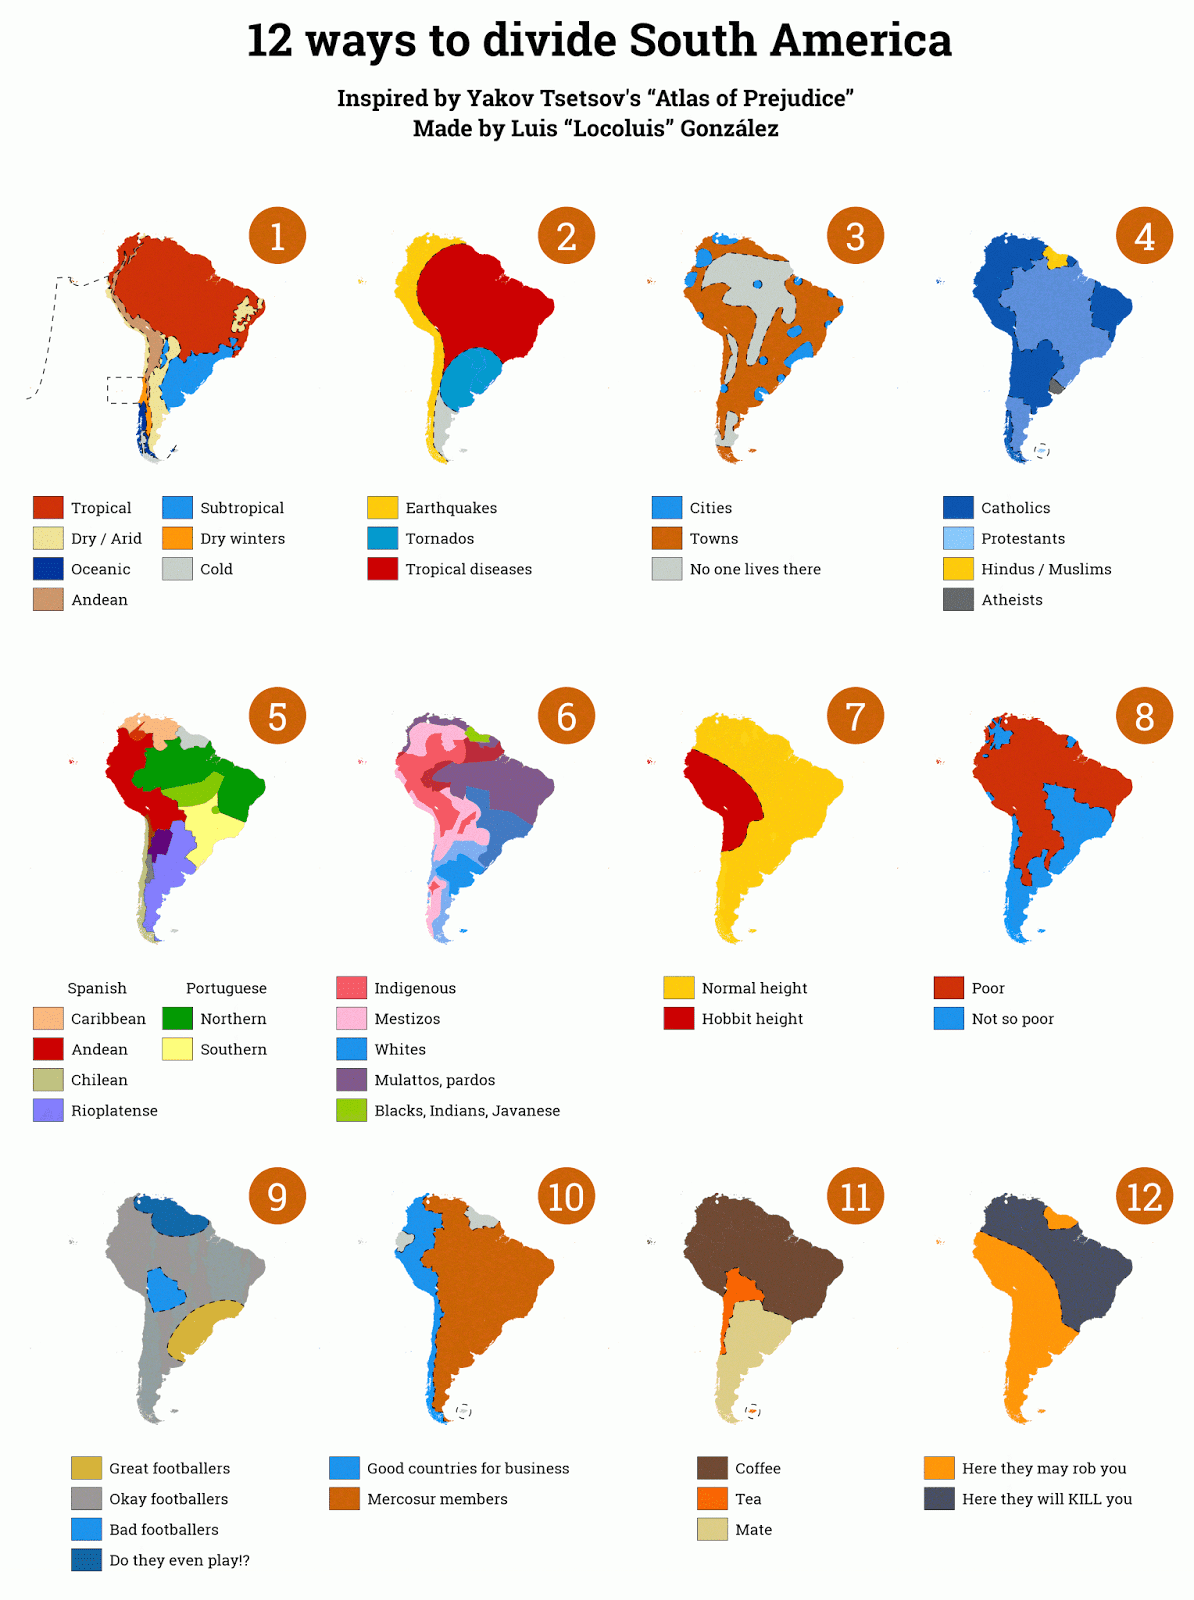 12 ways to divide South America